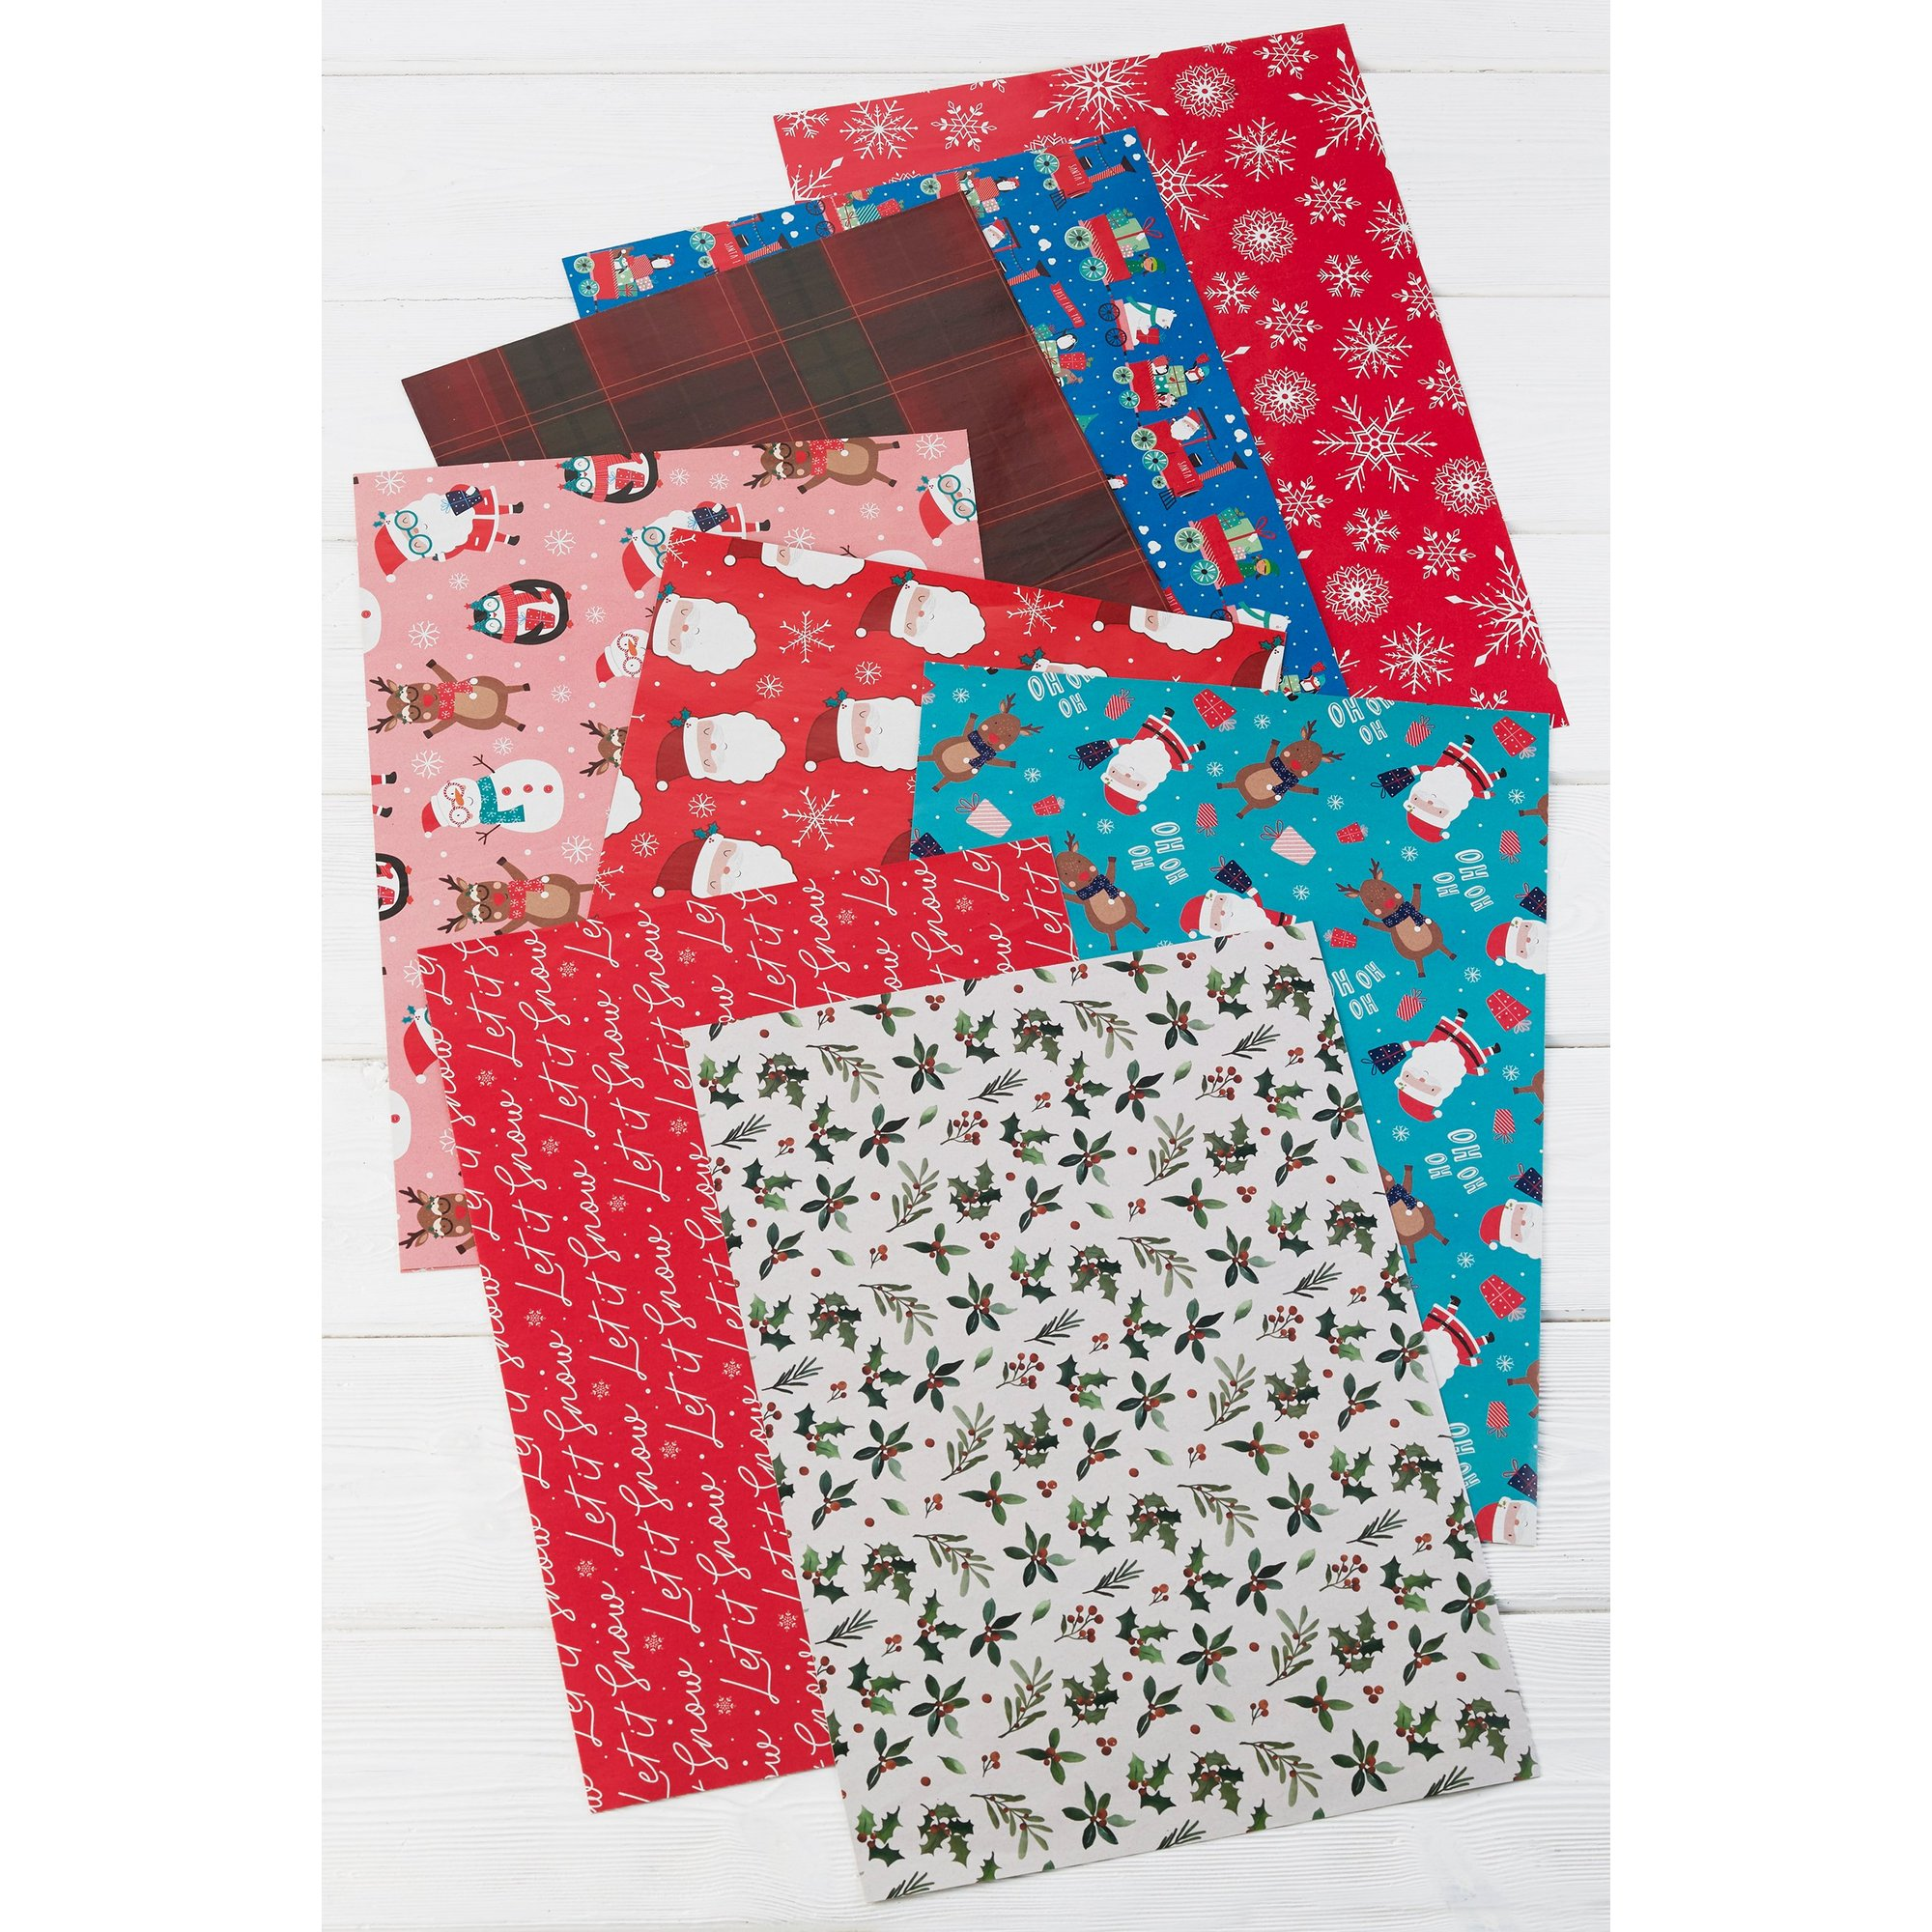 Image of Pack of 8 Christmas Wrap Sheets